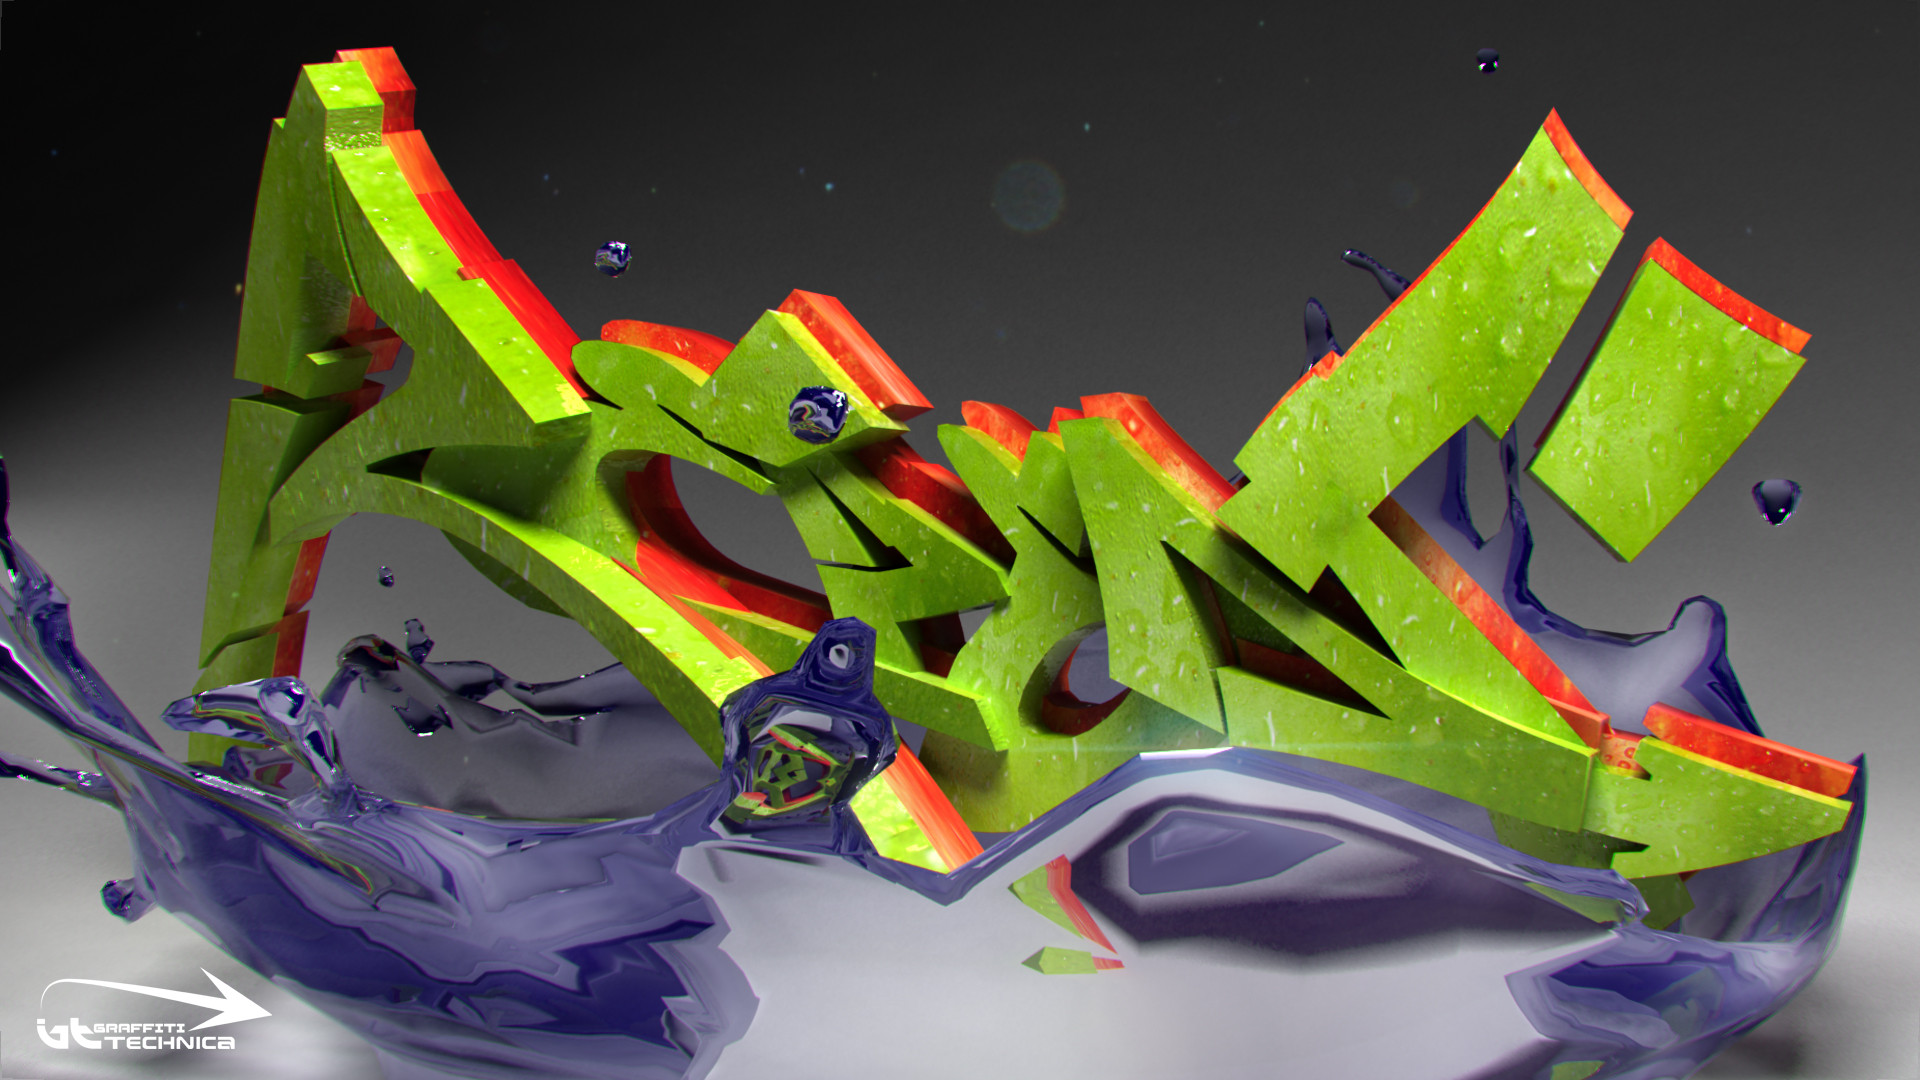 35 Handpicked Graffiti Wallpapersbackgrounds For Free Download